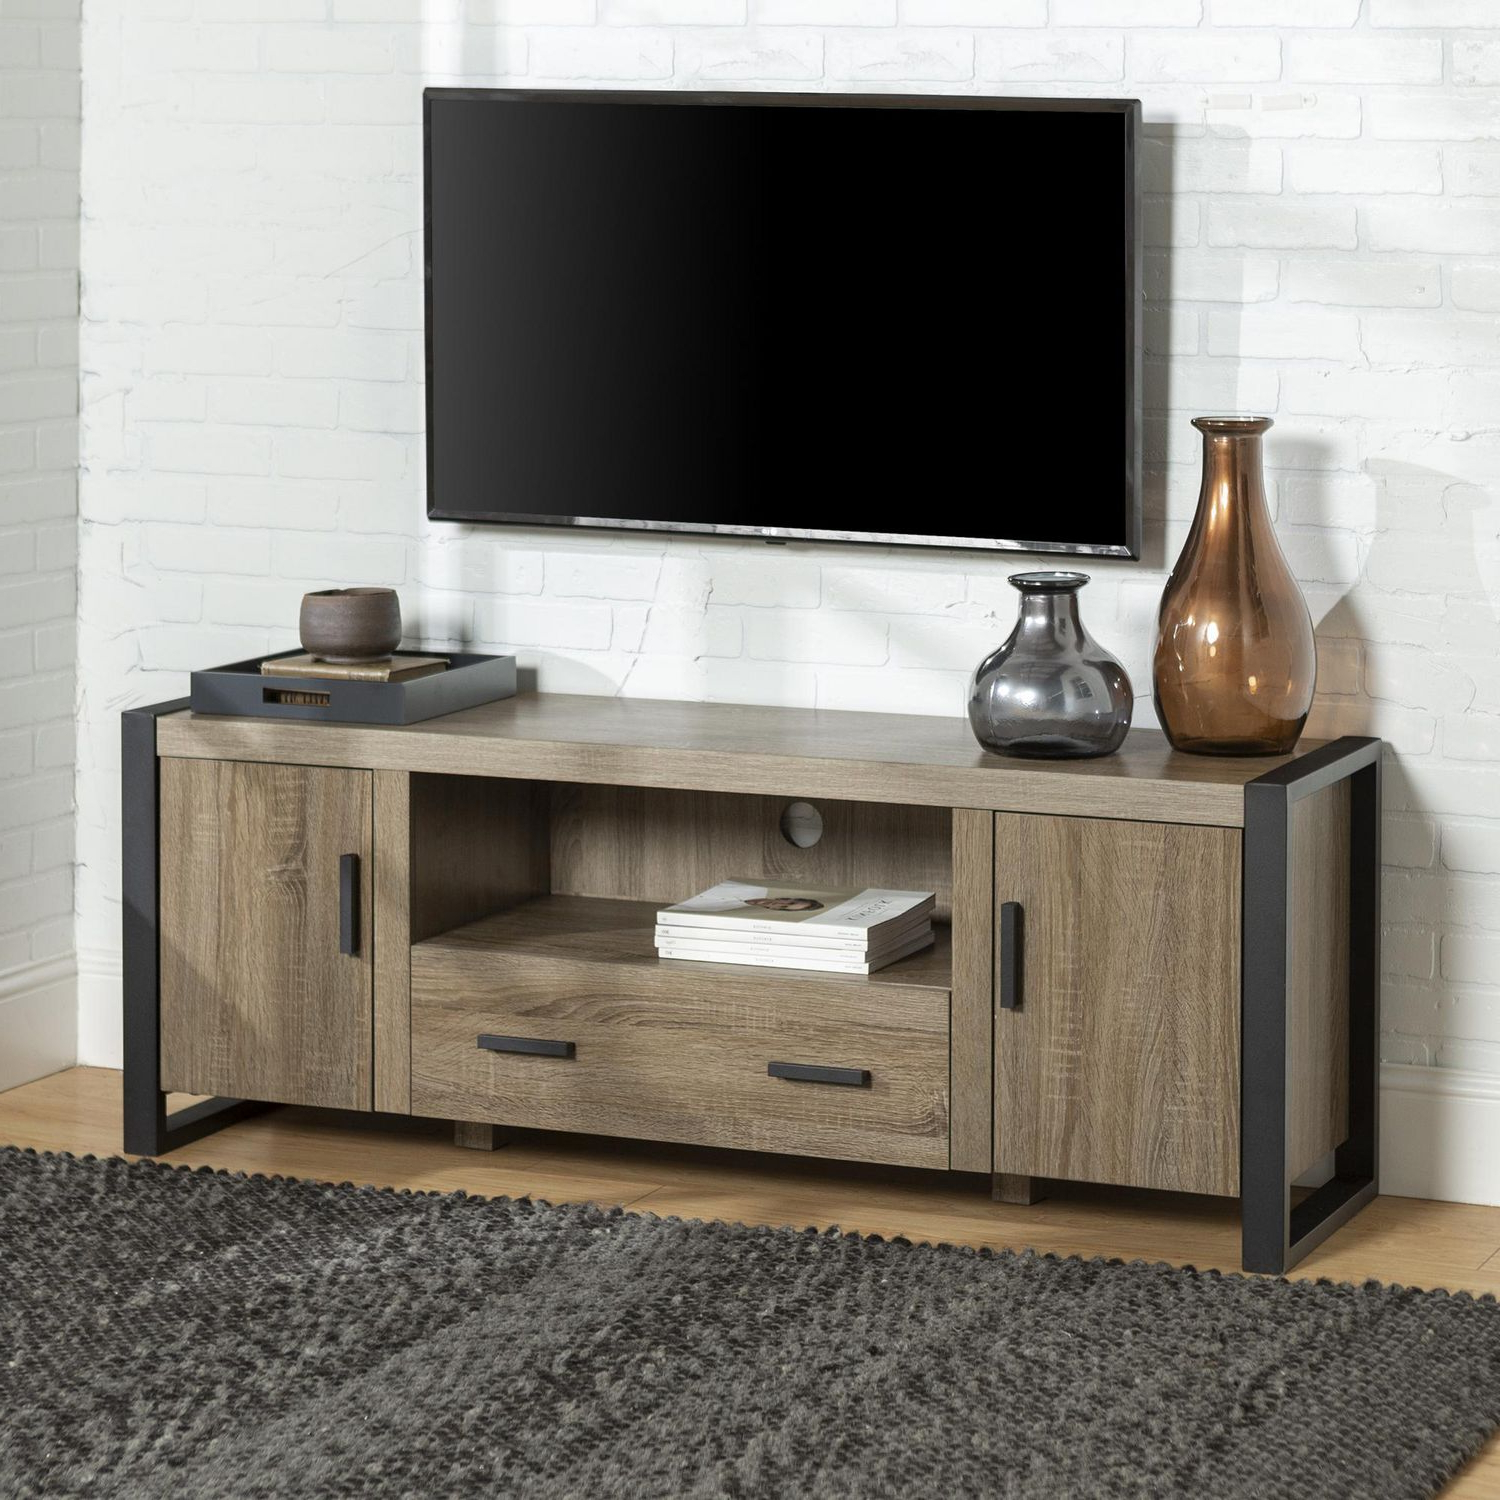 Manor Park Modern Industrial Tv Stand – Multiple Finishes With Tv Stands With Led Lights In Multiple Finishes (View 4 of 20)